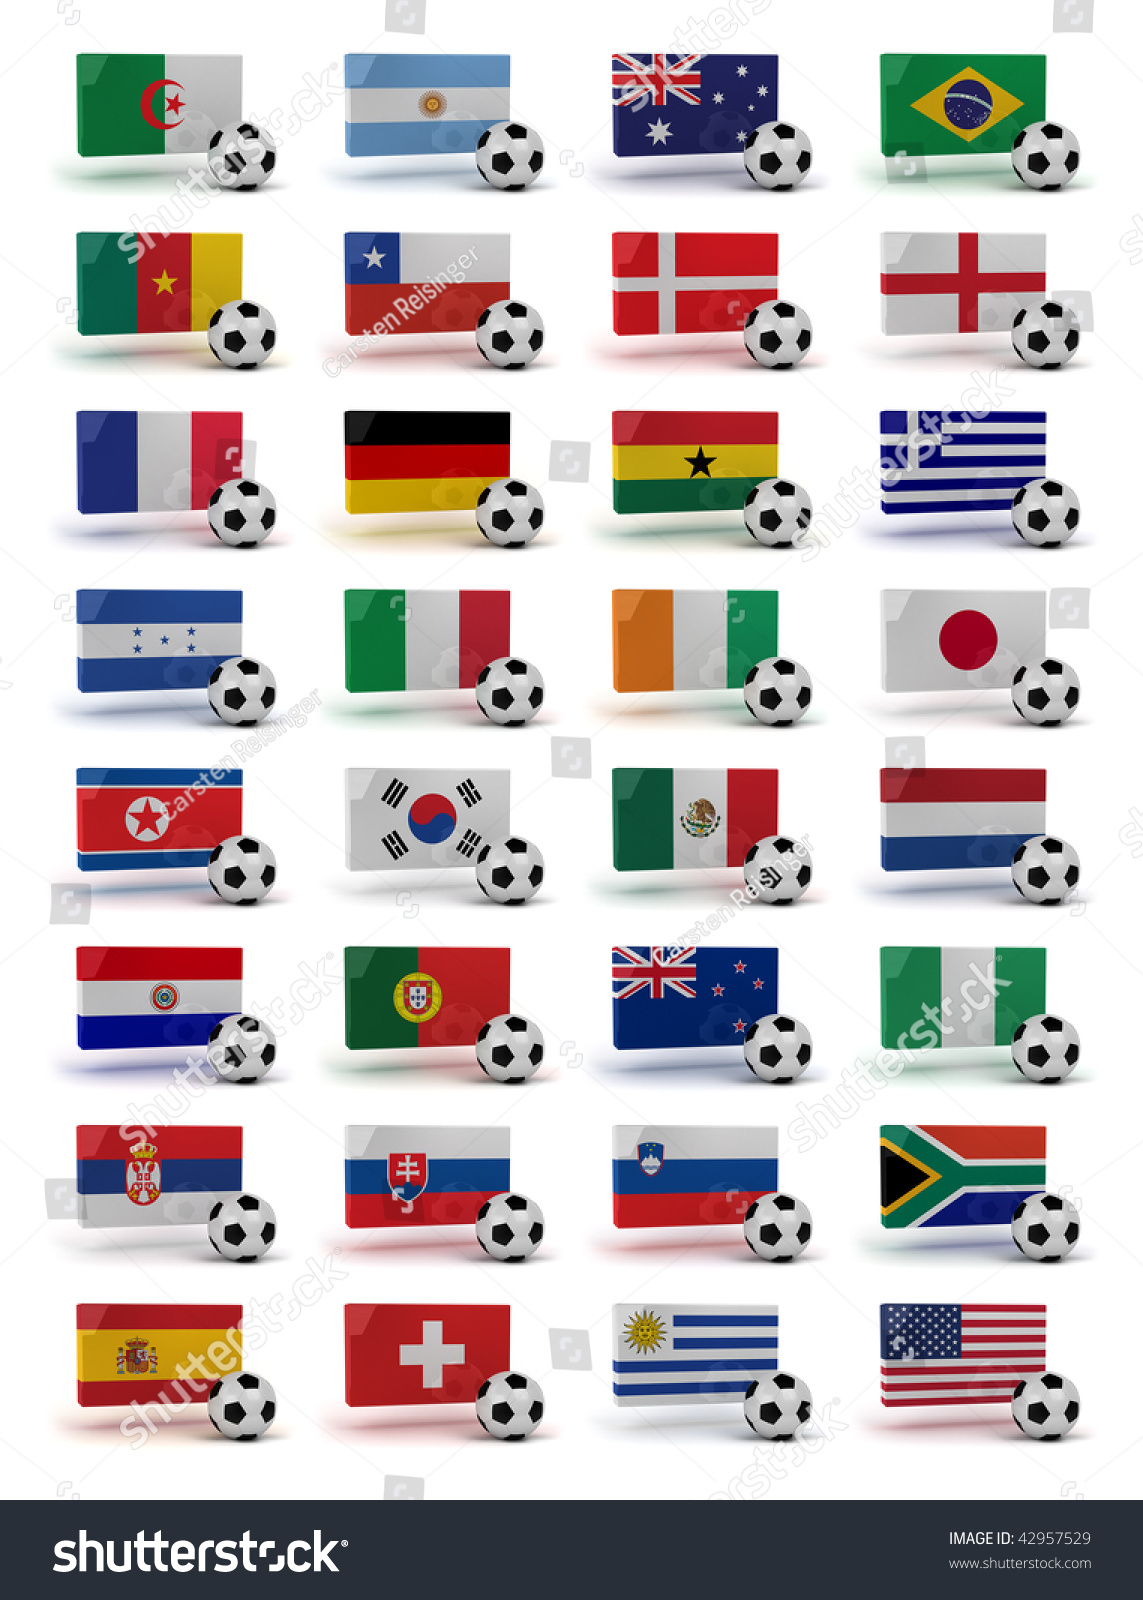 Soccer World Cup 2010 Participating Countries